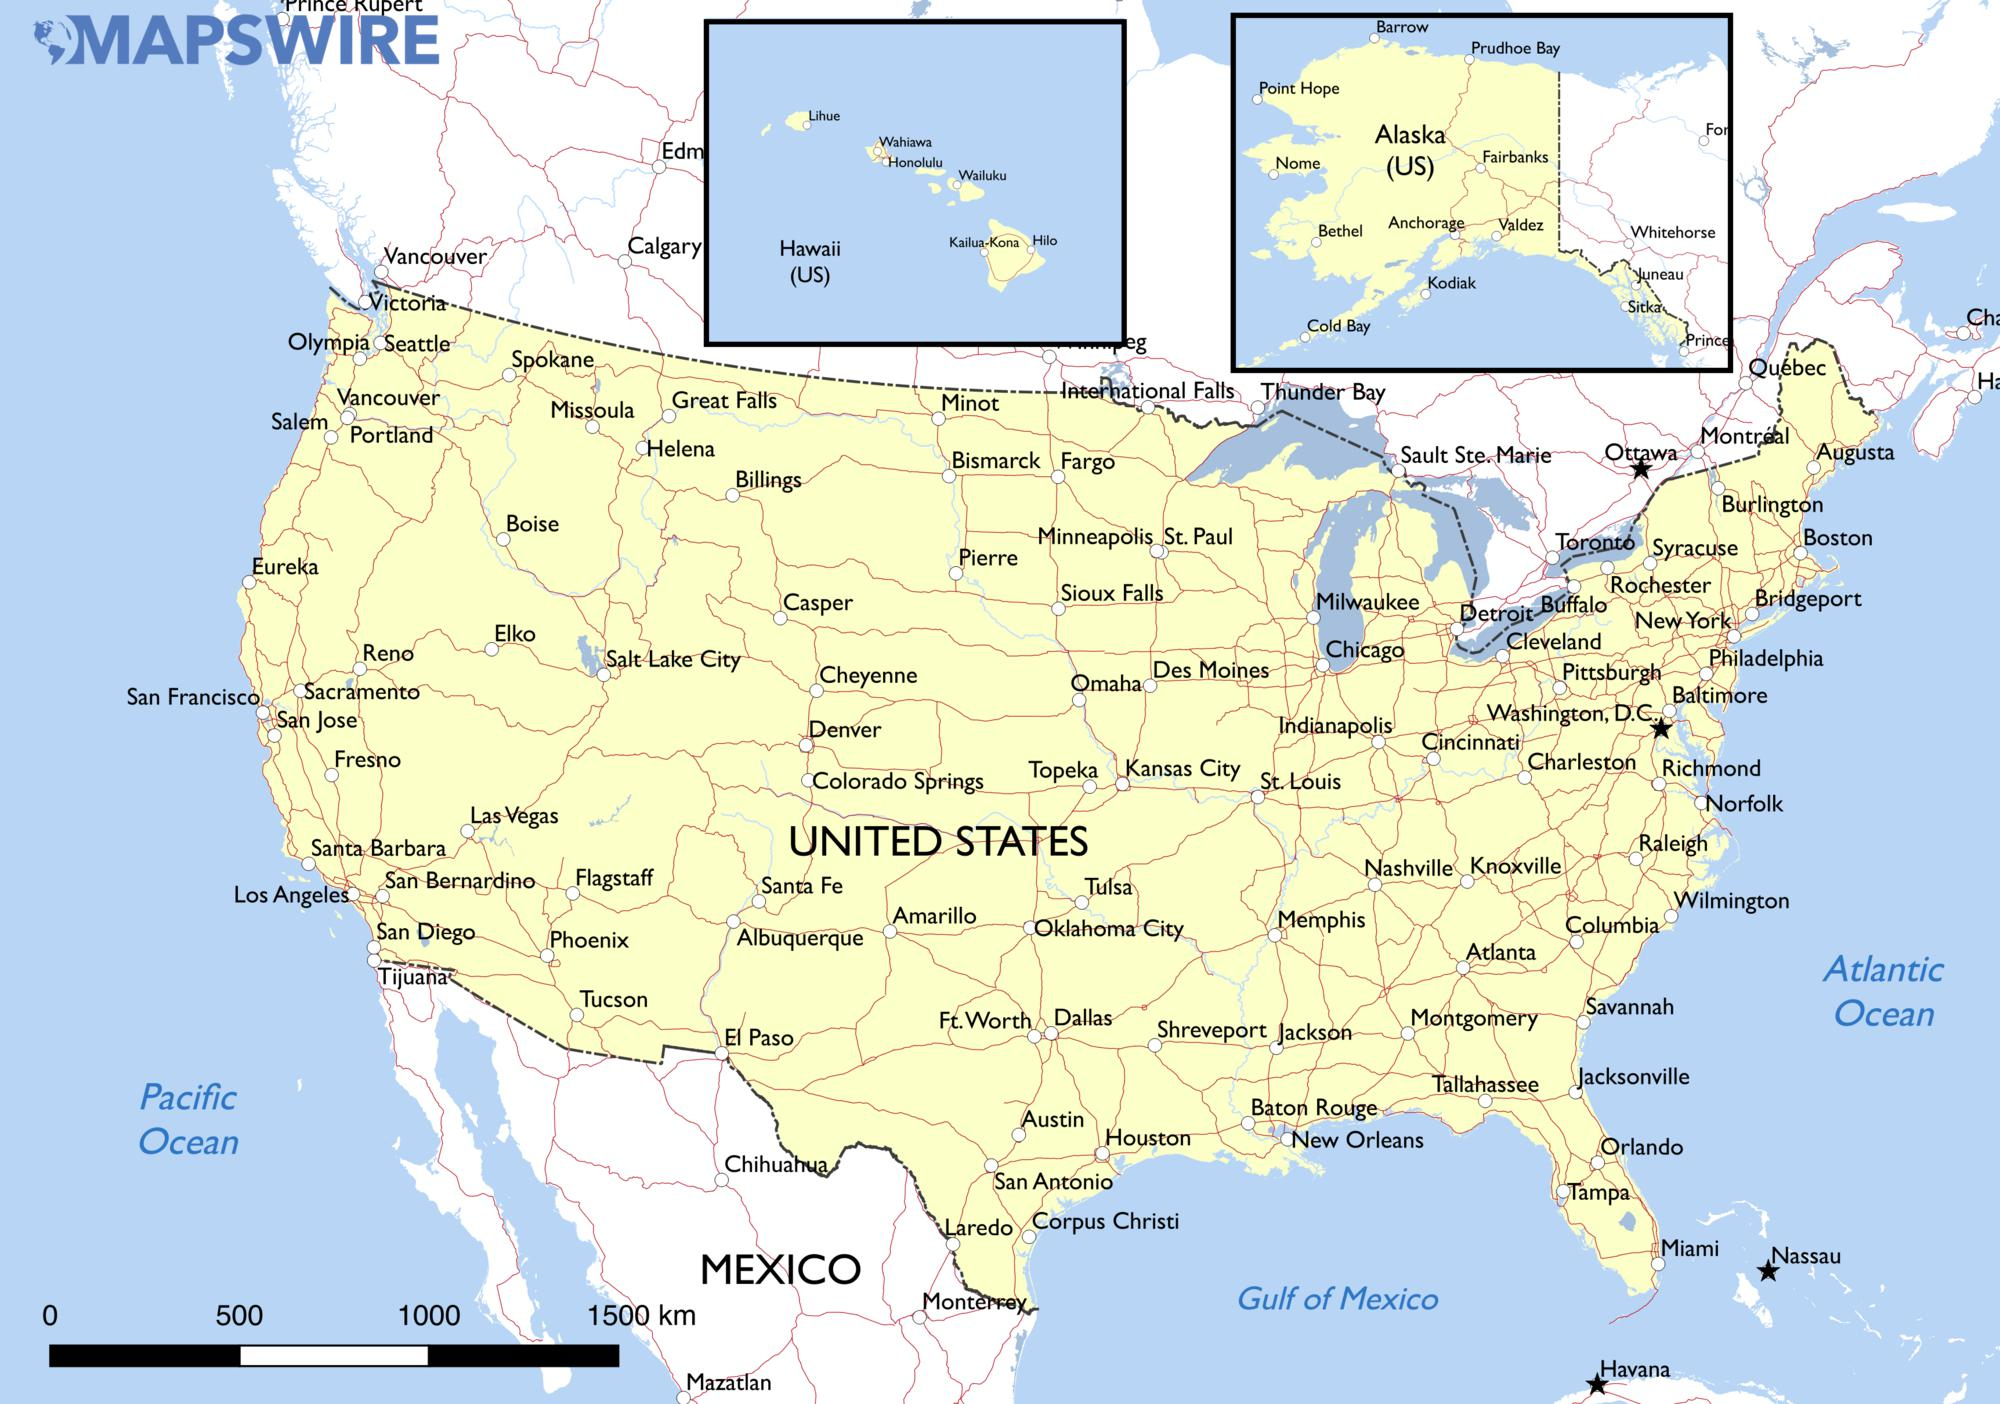 Free Maps Of The United States – Mapswire - Printable Map Of The Usa With States And Cities